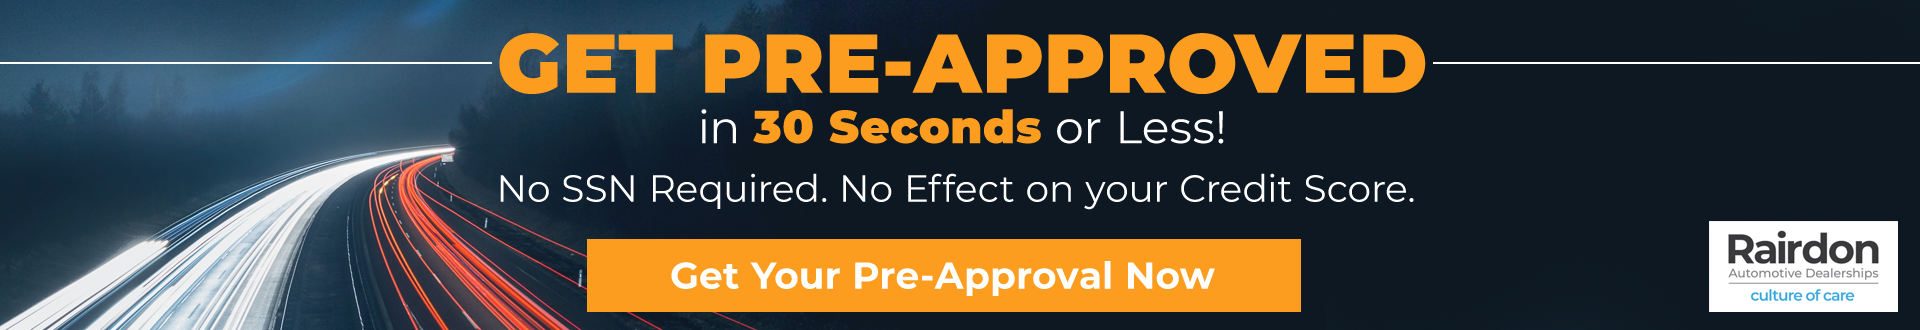 get pre-approved 30 seconds or less